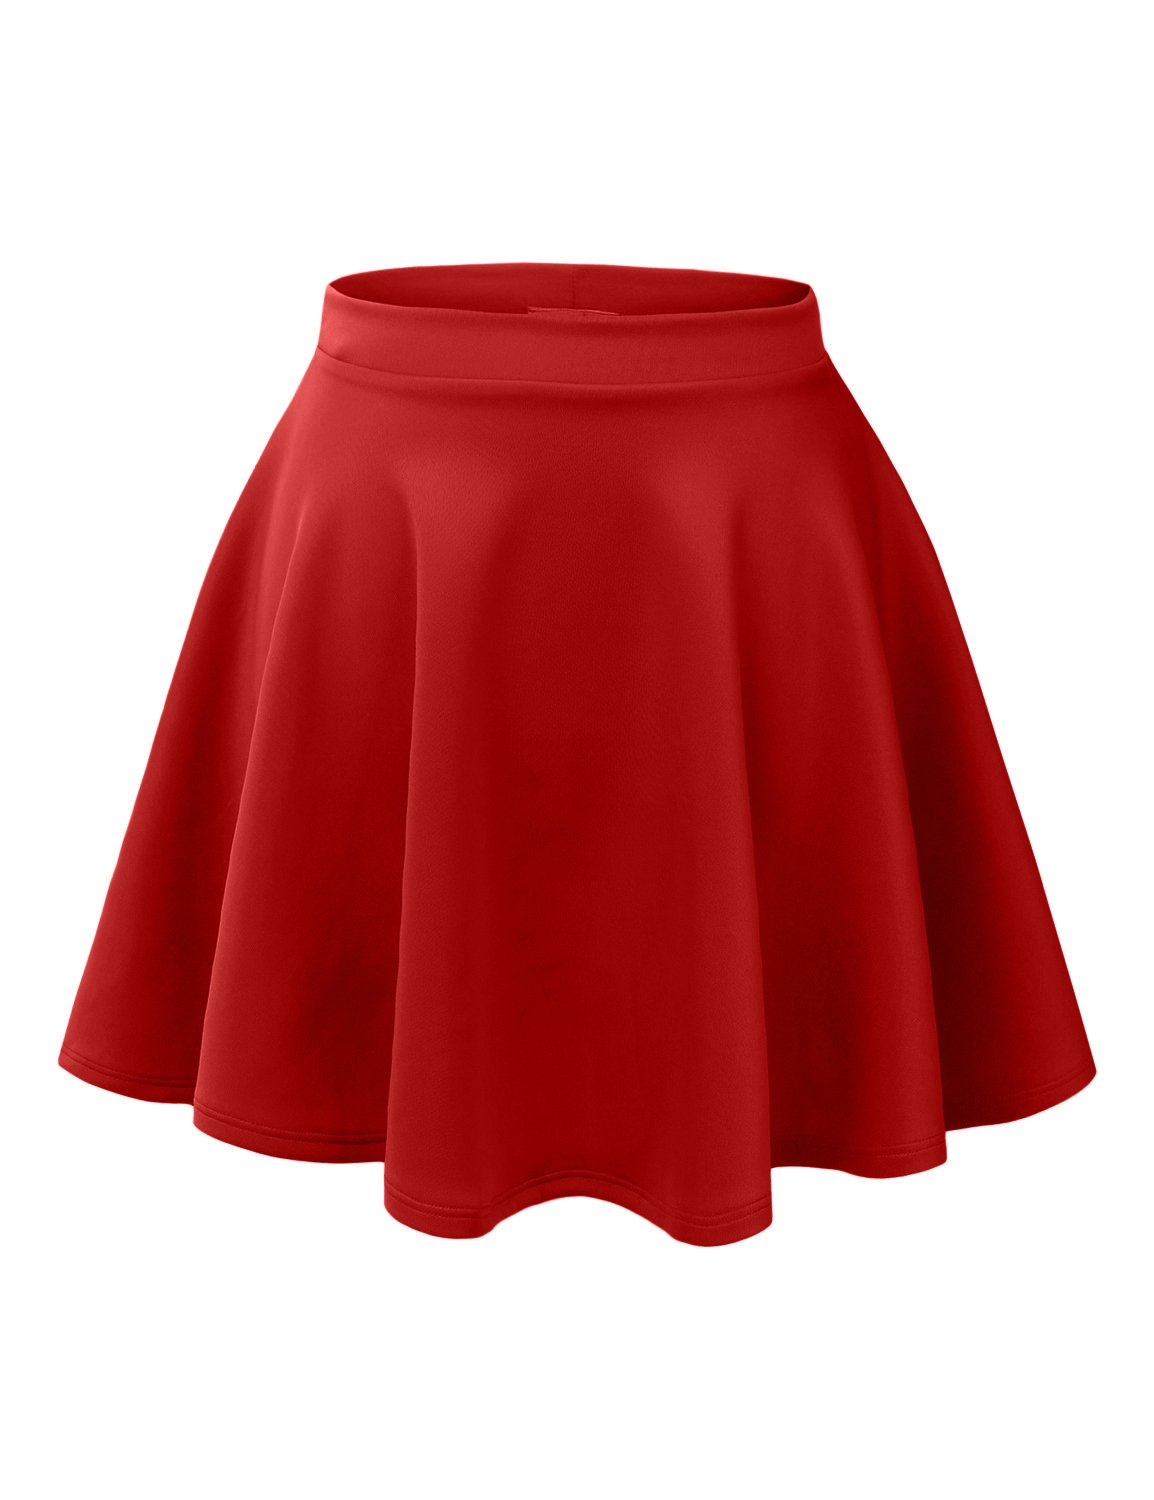 RK RUBY KARAT Womens Casual Flared Color Skater Skirt